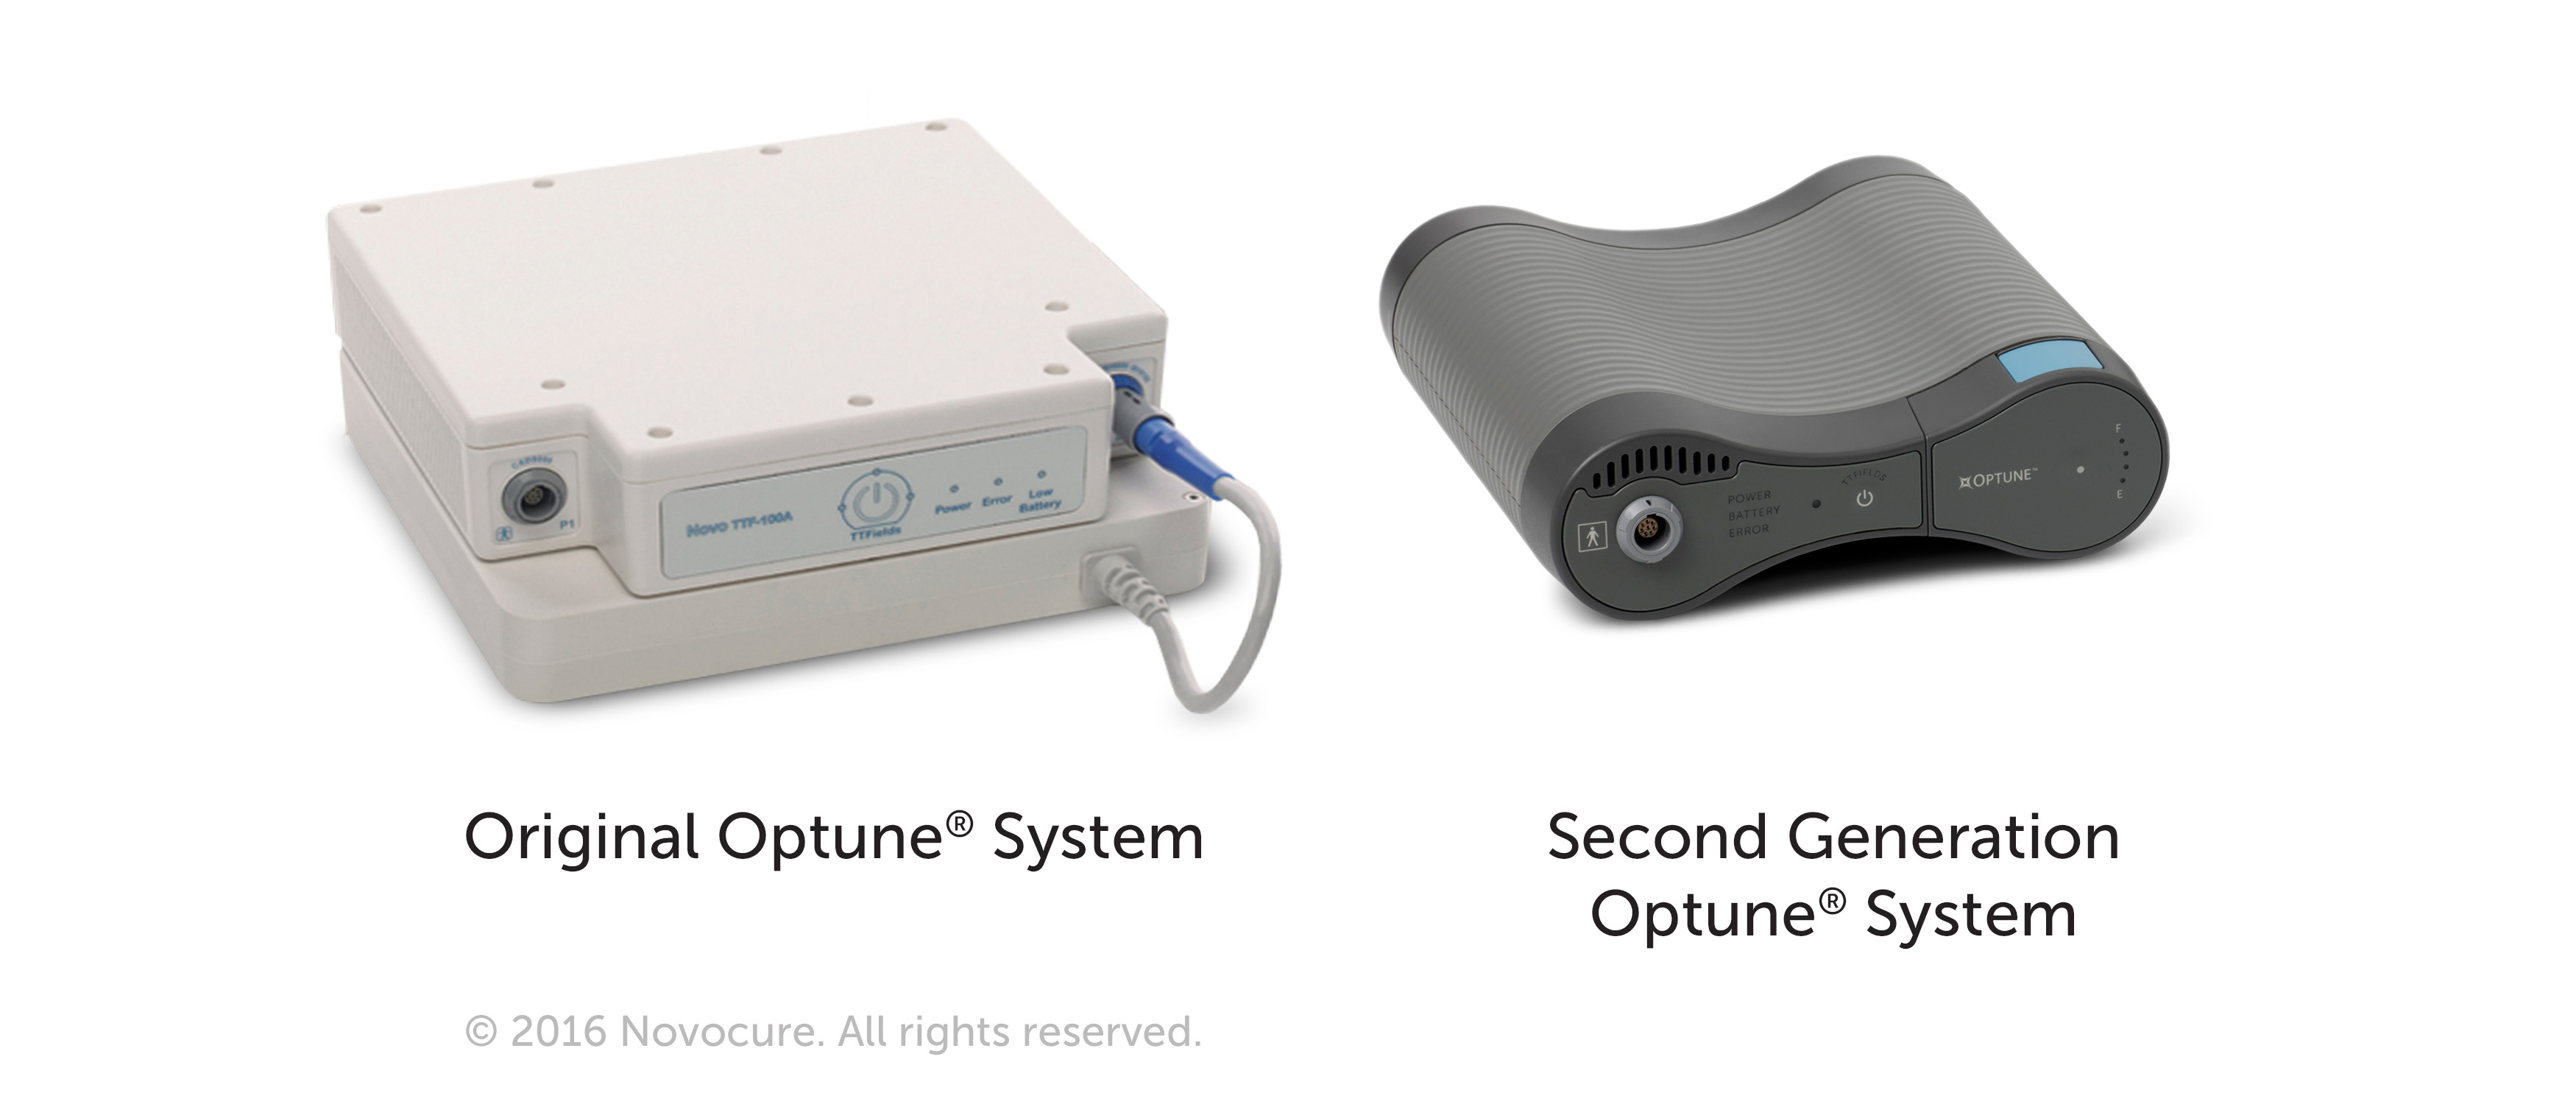 Novocure Receives Fda Approval For Second Generation Optune System Business Wire